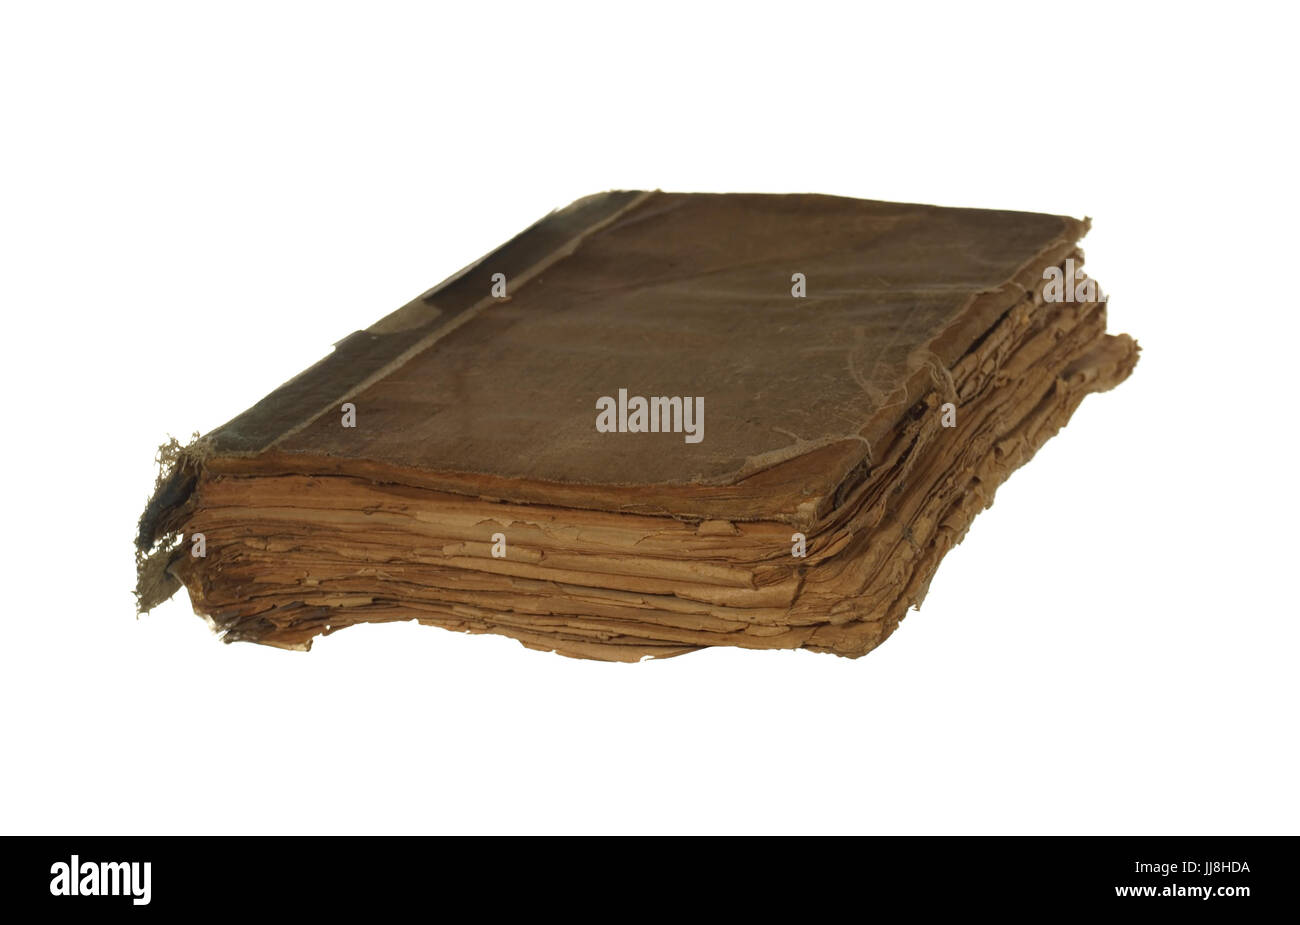 Very old and worn book isolated on white background. - Stock Image